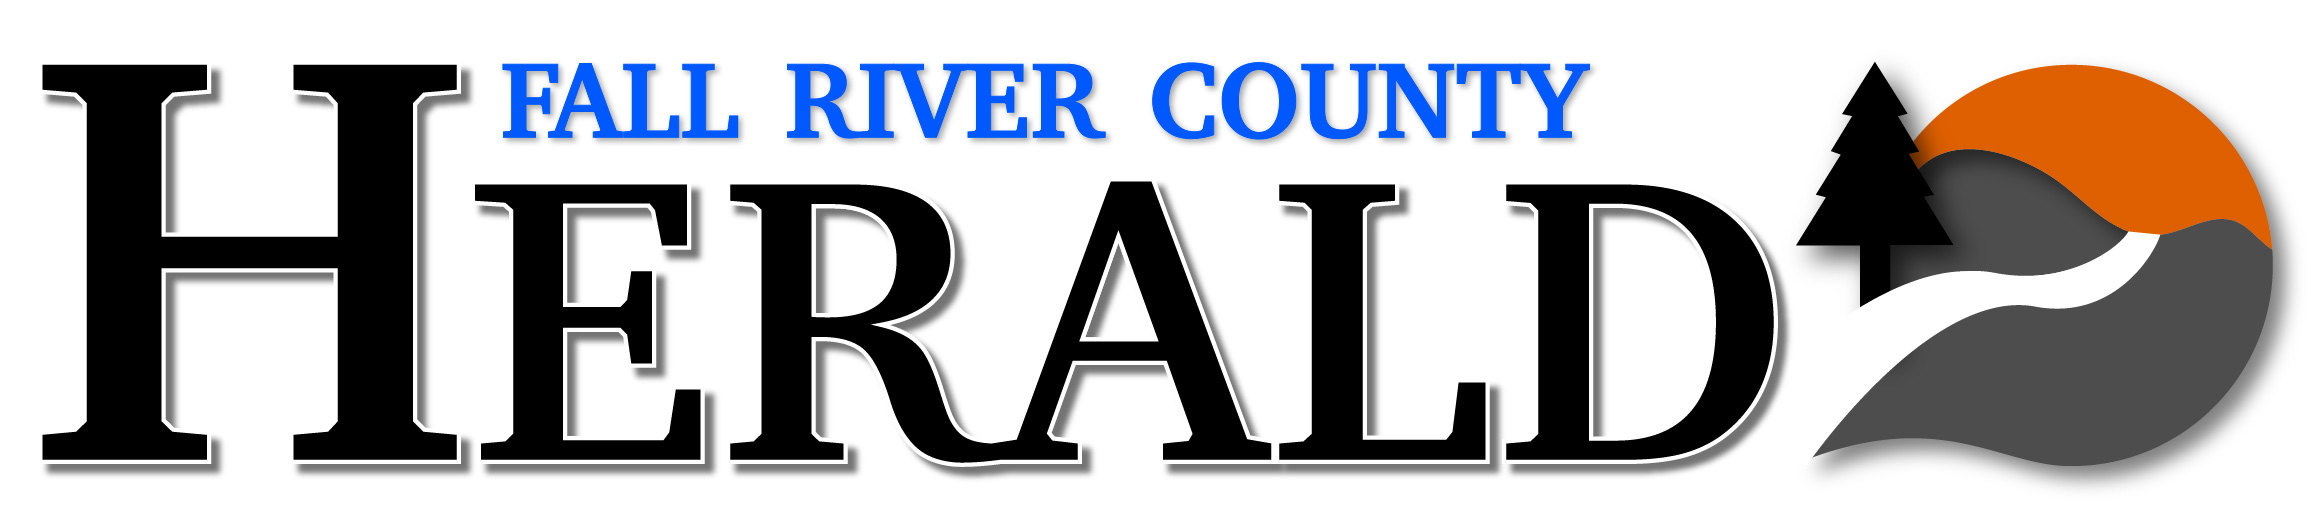 Fall River County Herald Color 01